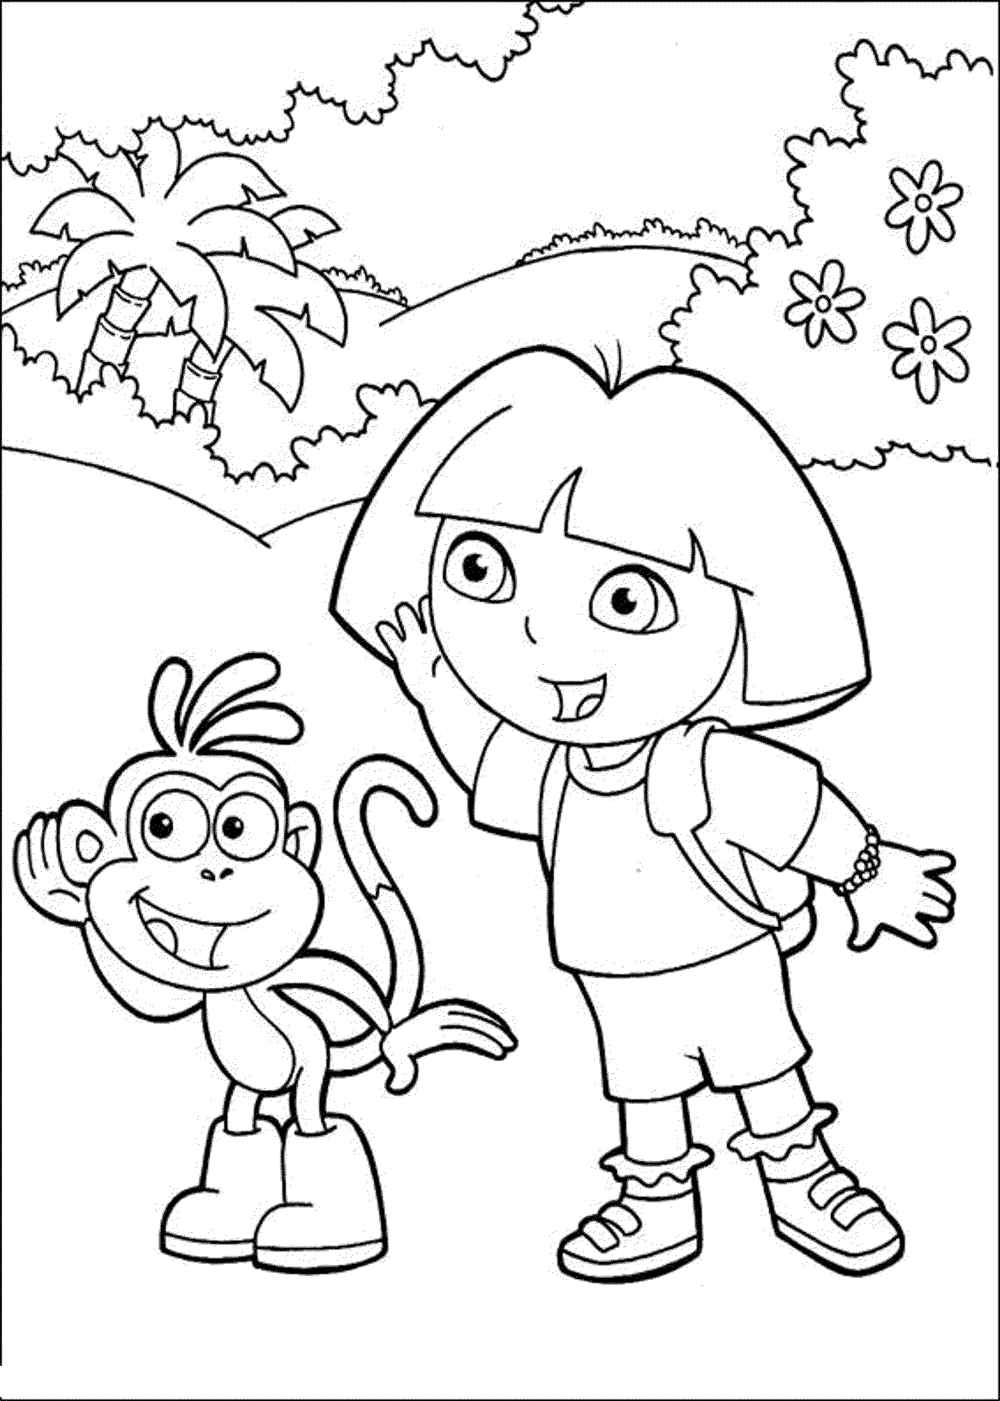 coloring sheets of dora print download dora coloring pages to learn new things coloring sheets of dora